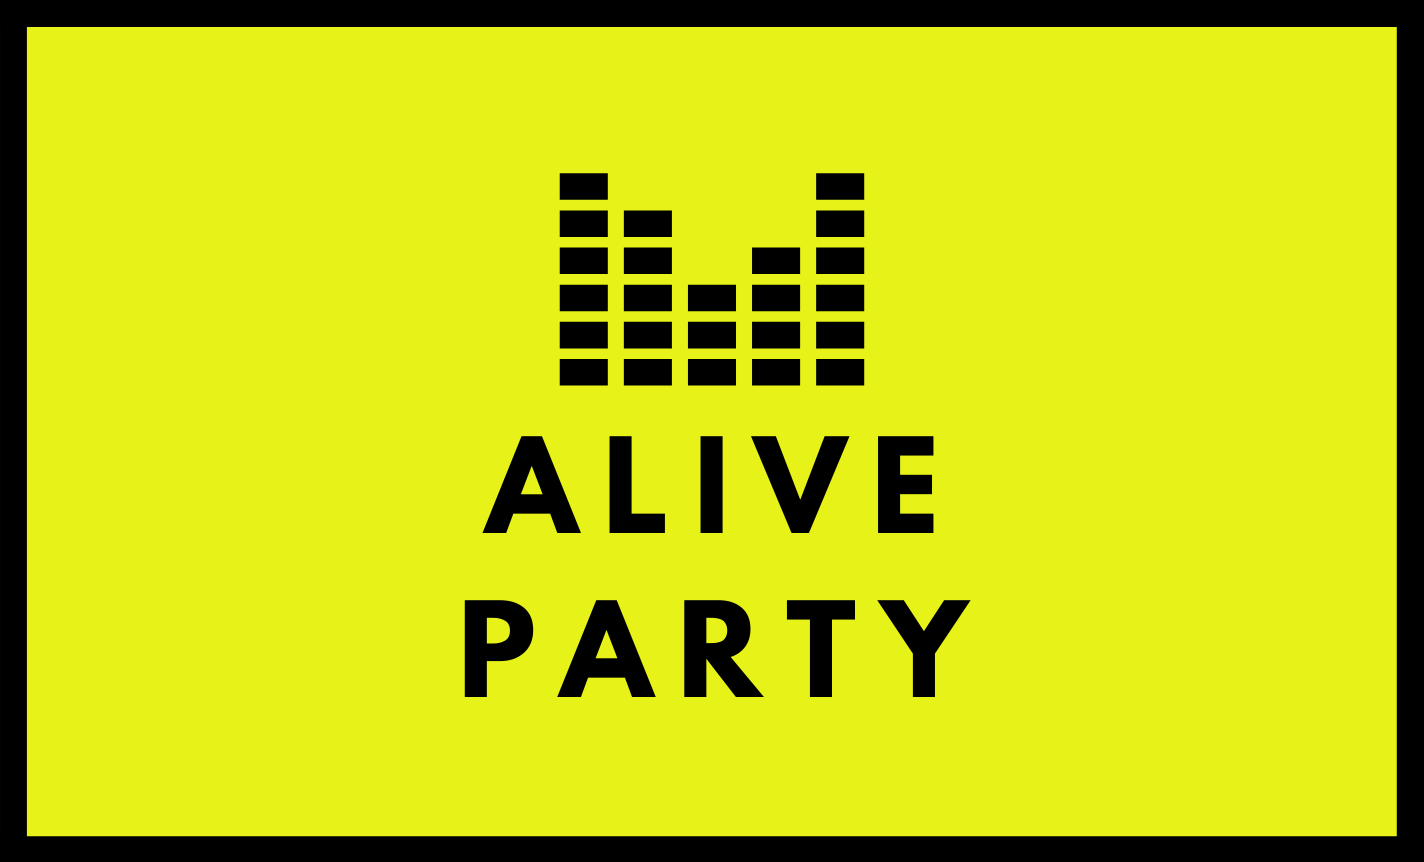 ALIVE Party